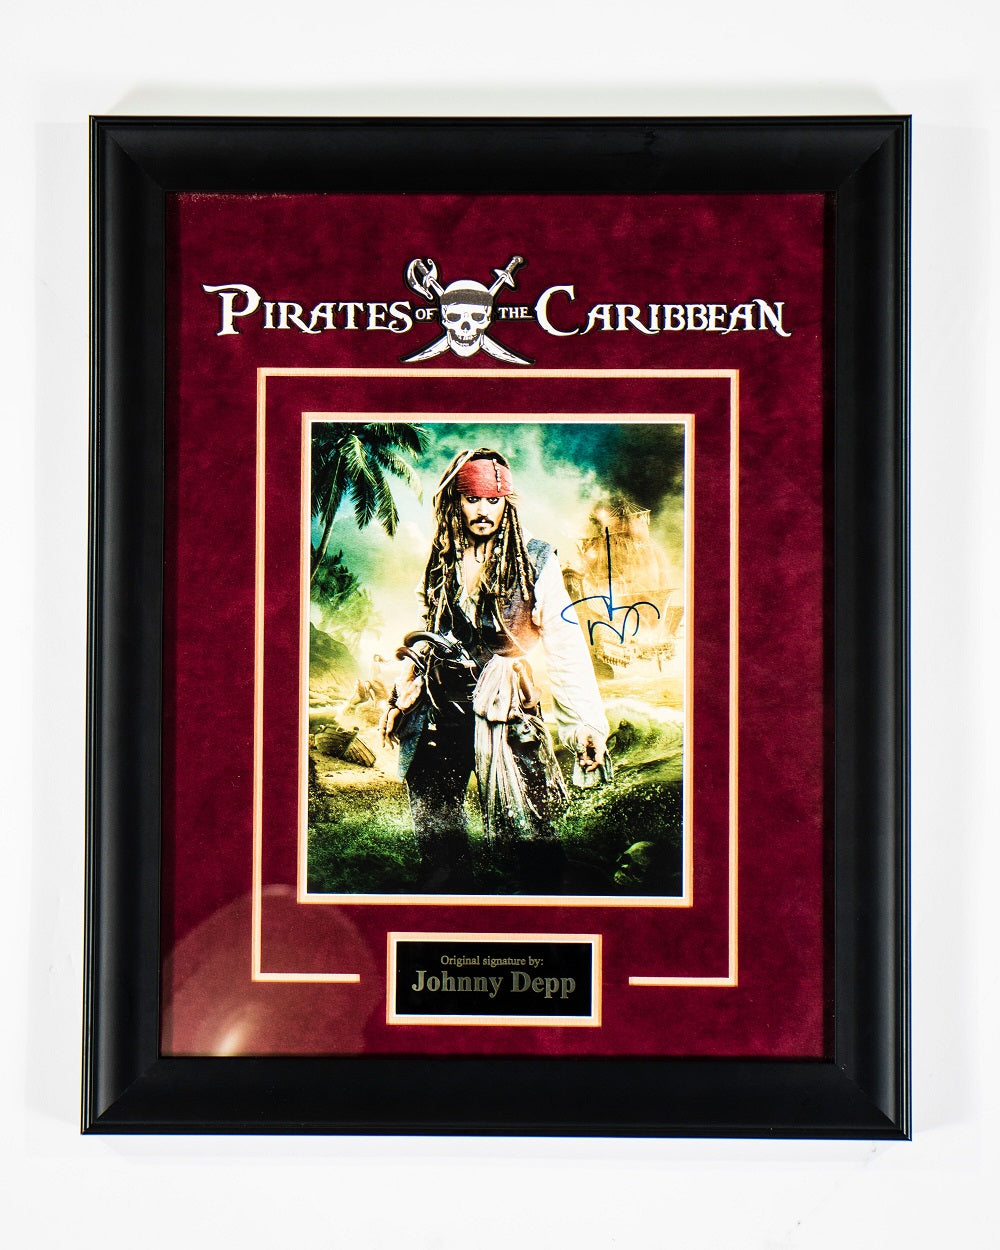 Pirates Of The Caribbean Signed By Johnny Depp Framed Artist